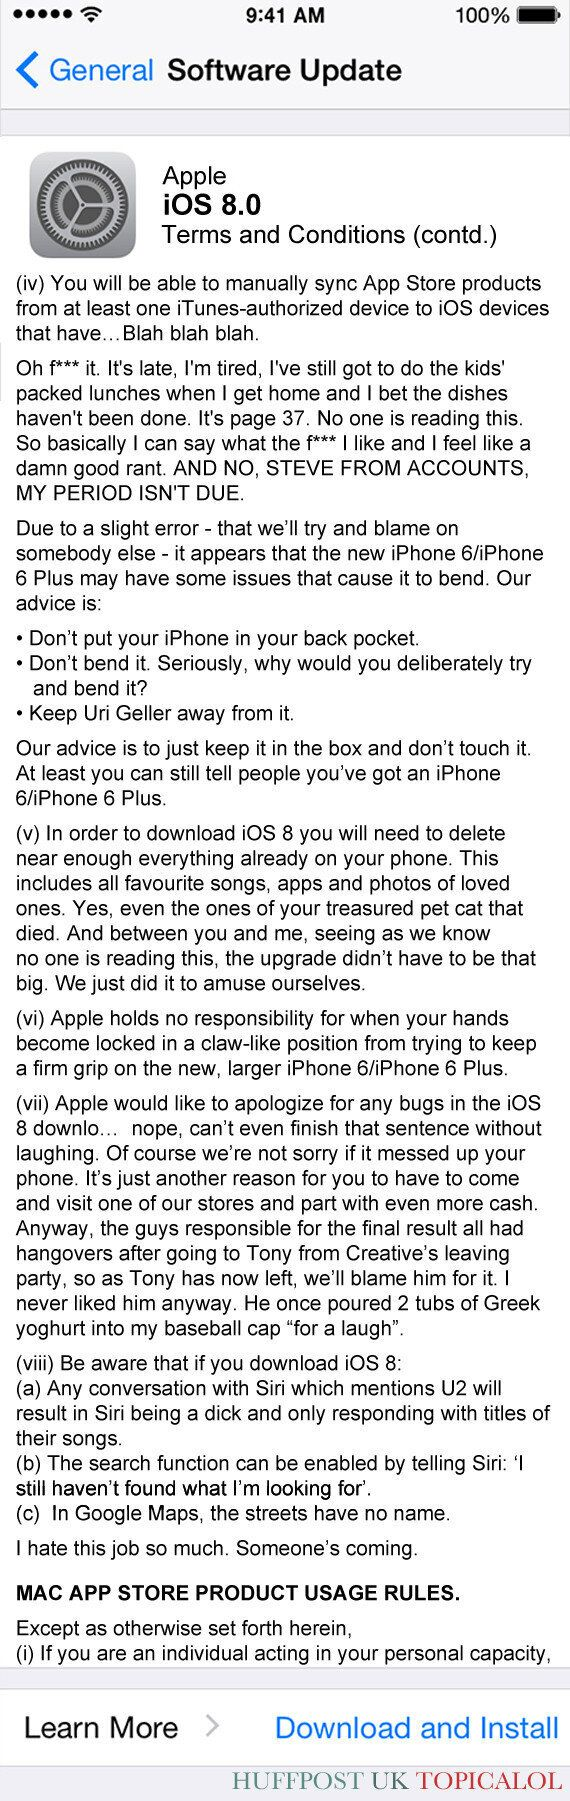 The Apple iOS 8 Terms And Conditions You Might Have